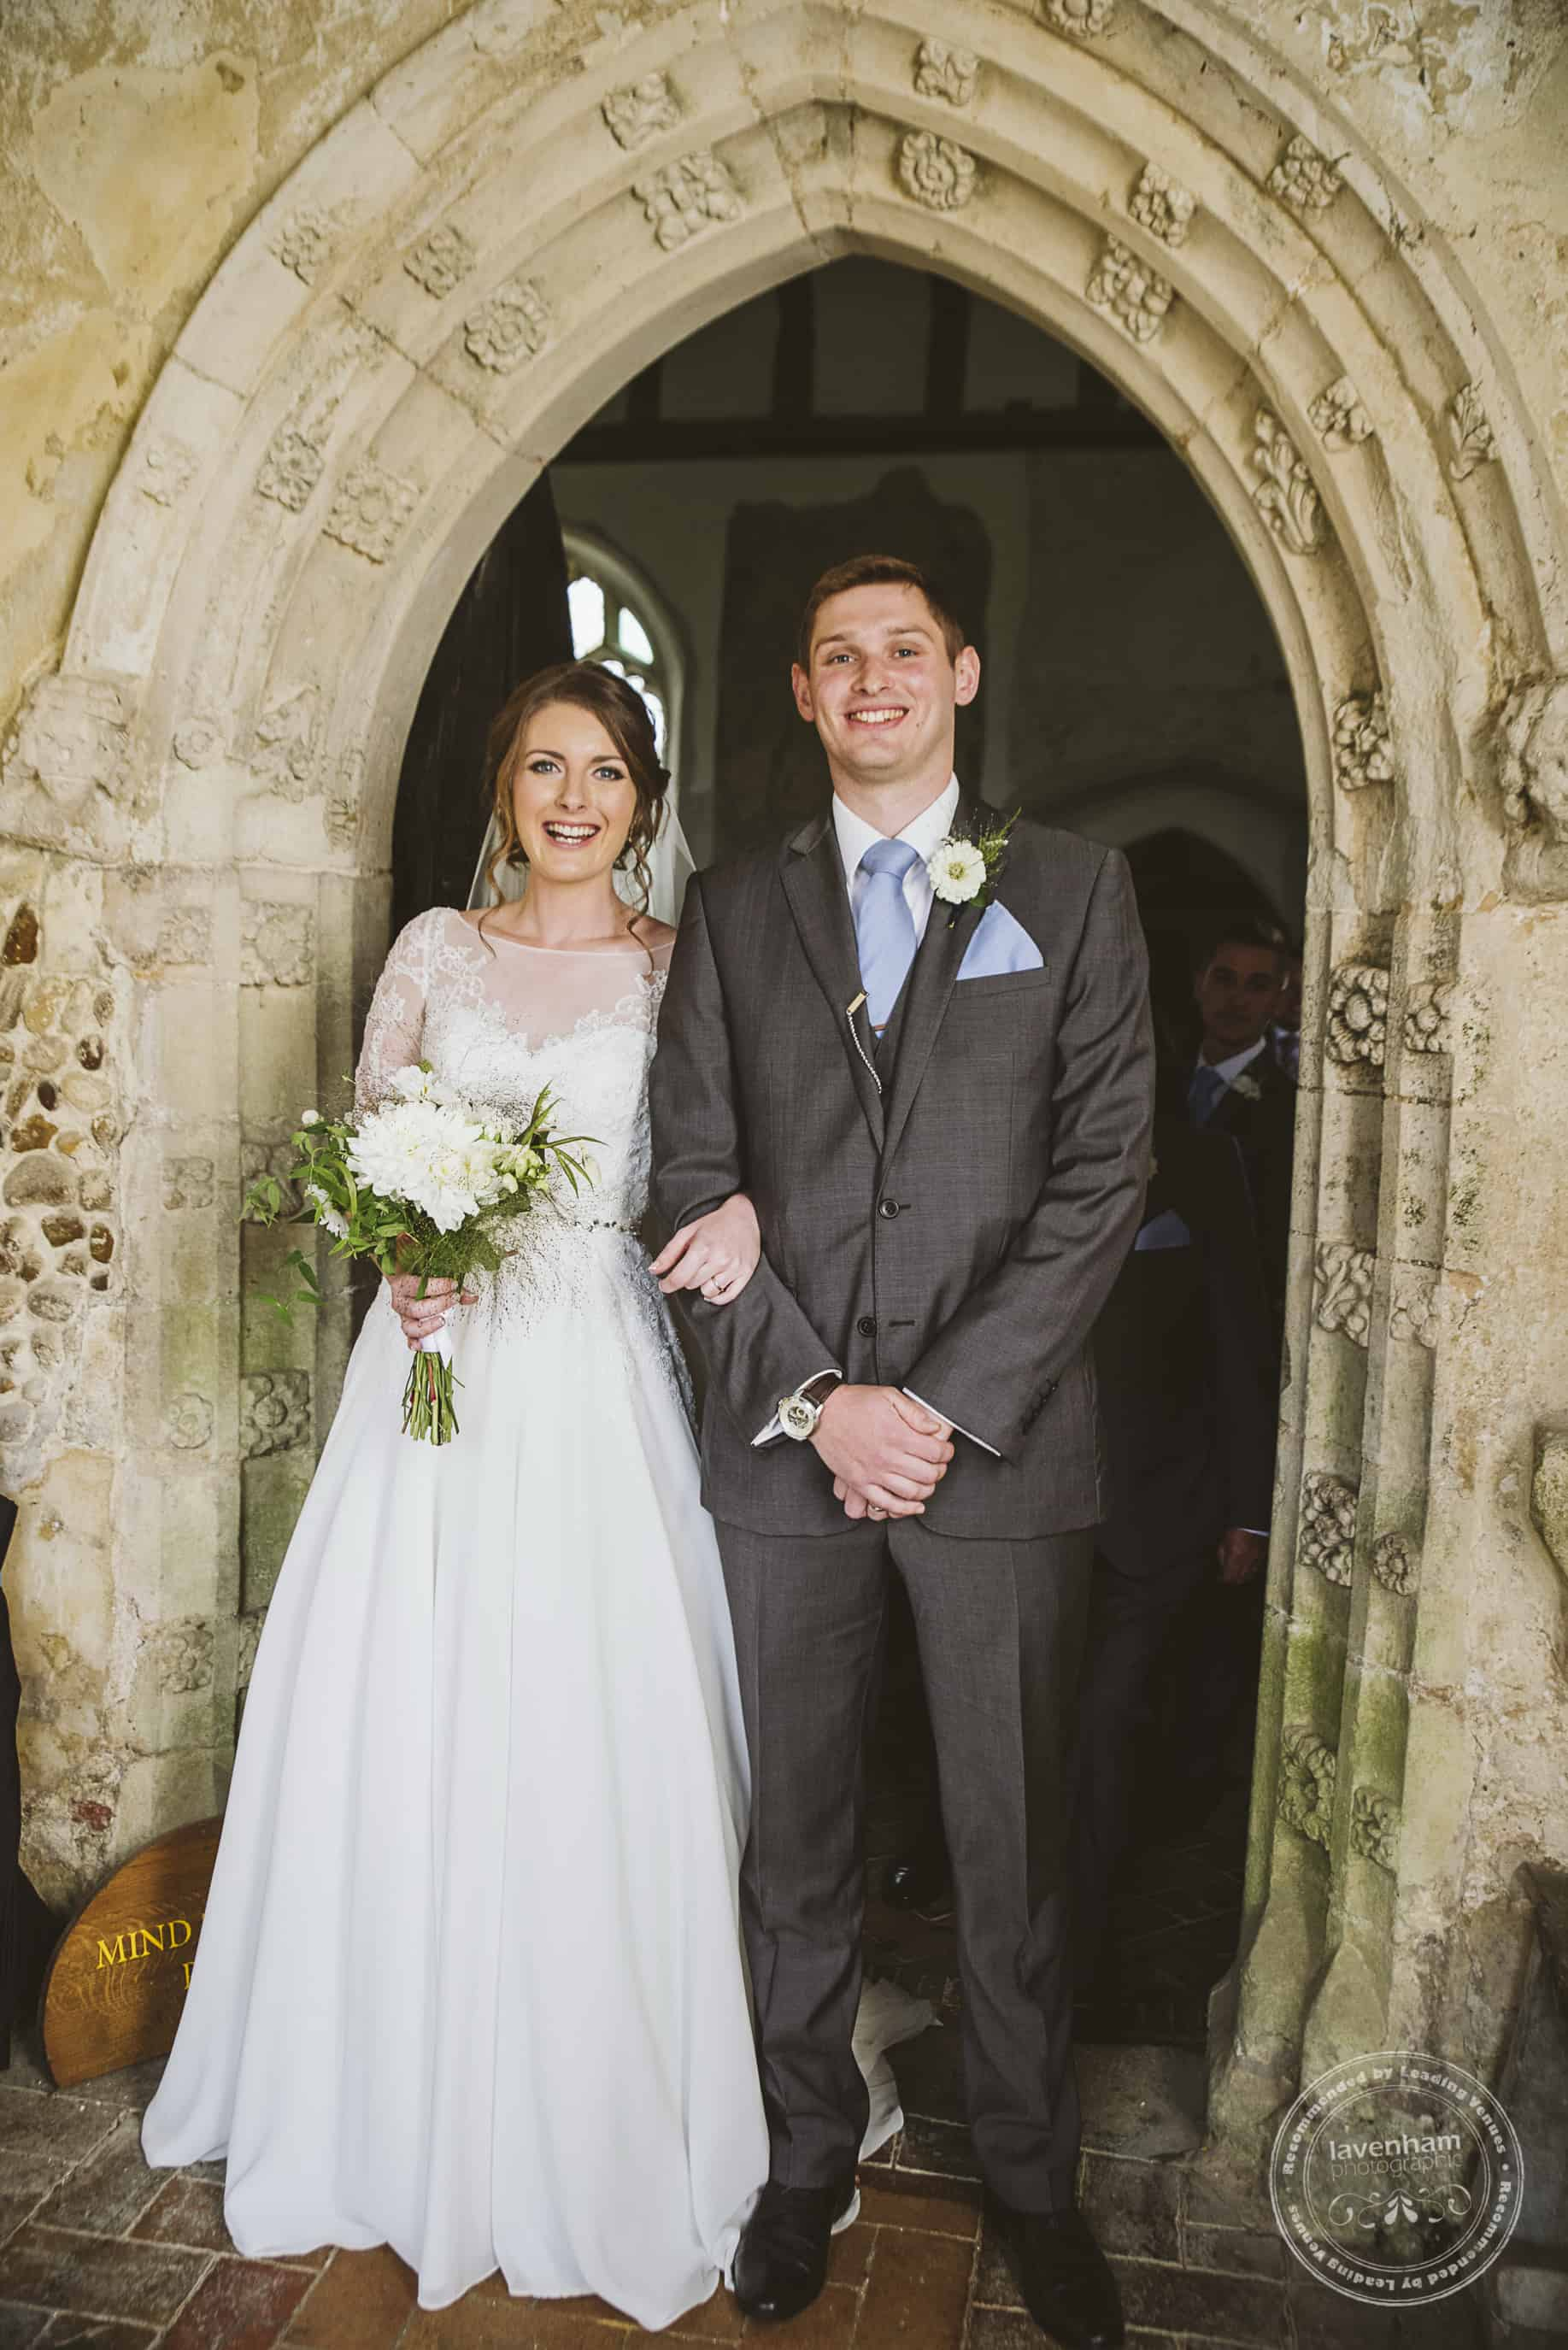 220918 Alpheton Barn Wedding Photography by Lavenham Photographic 063